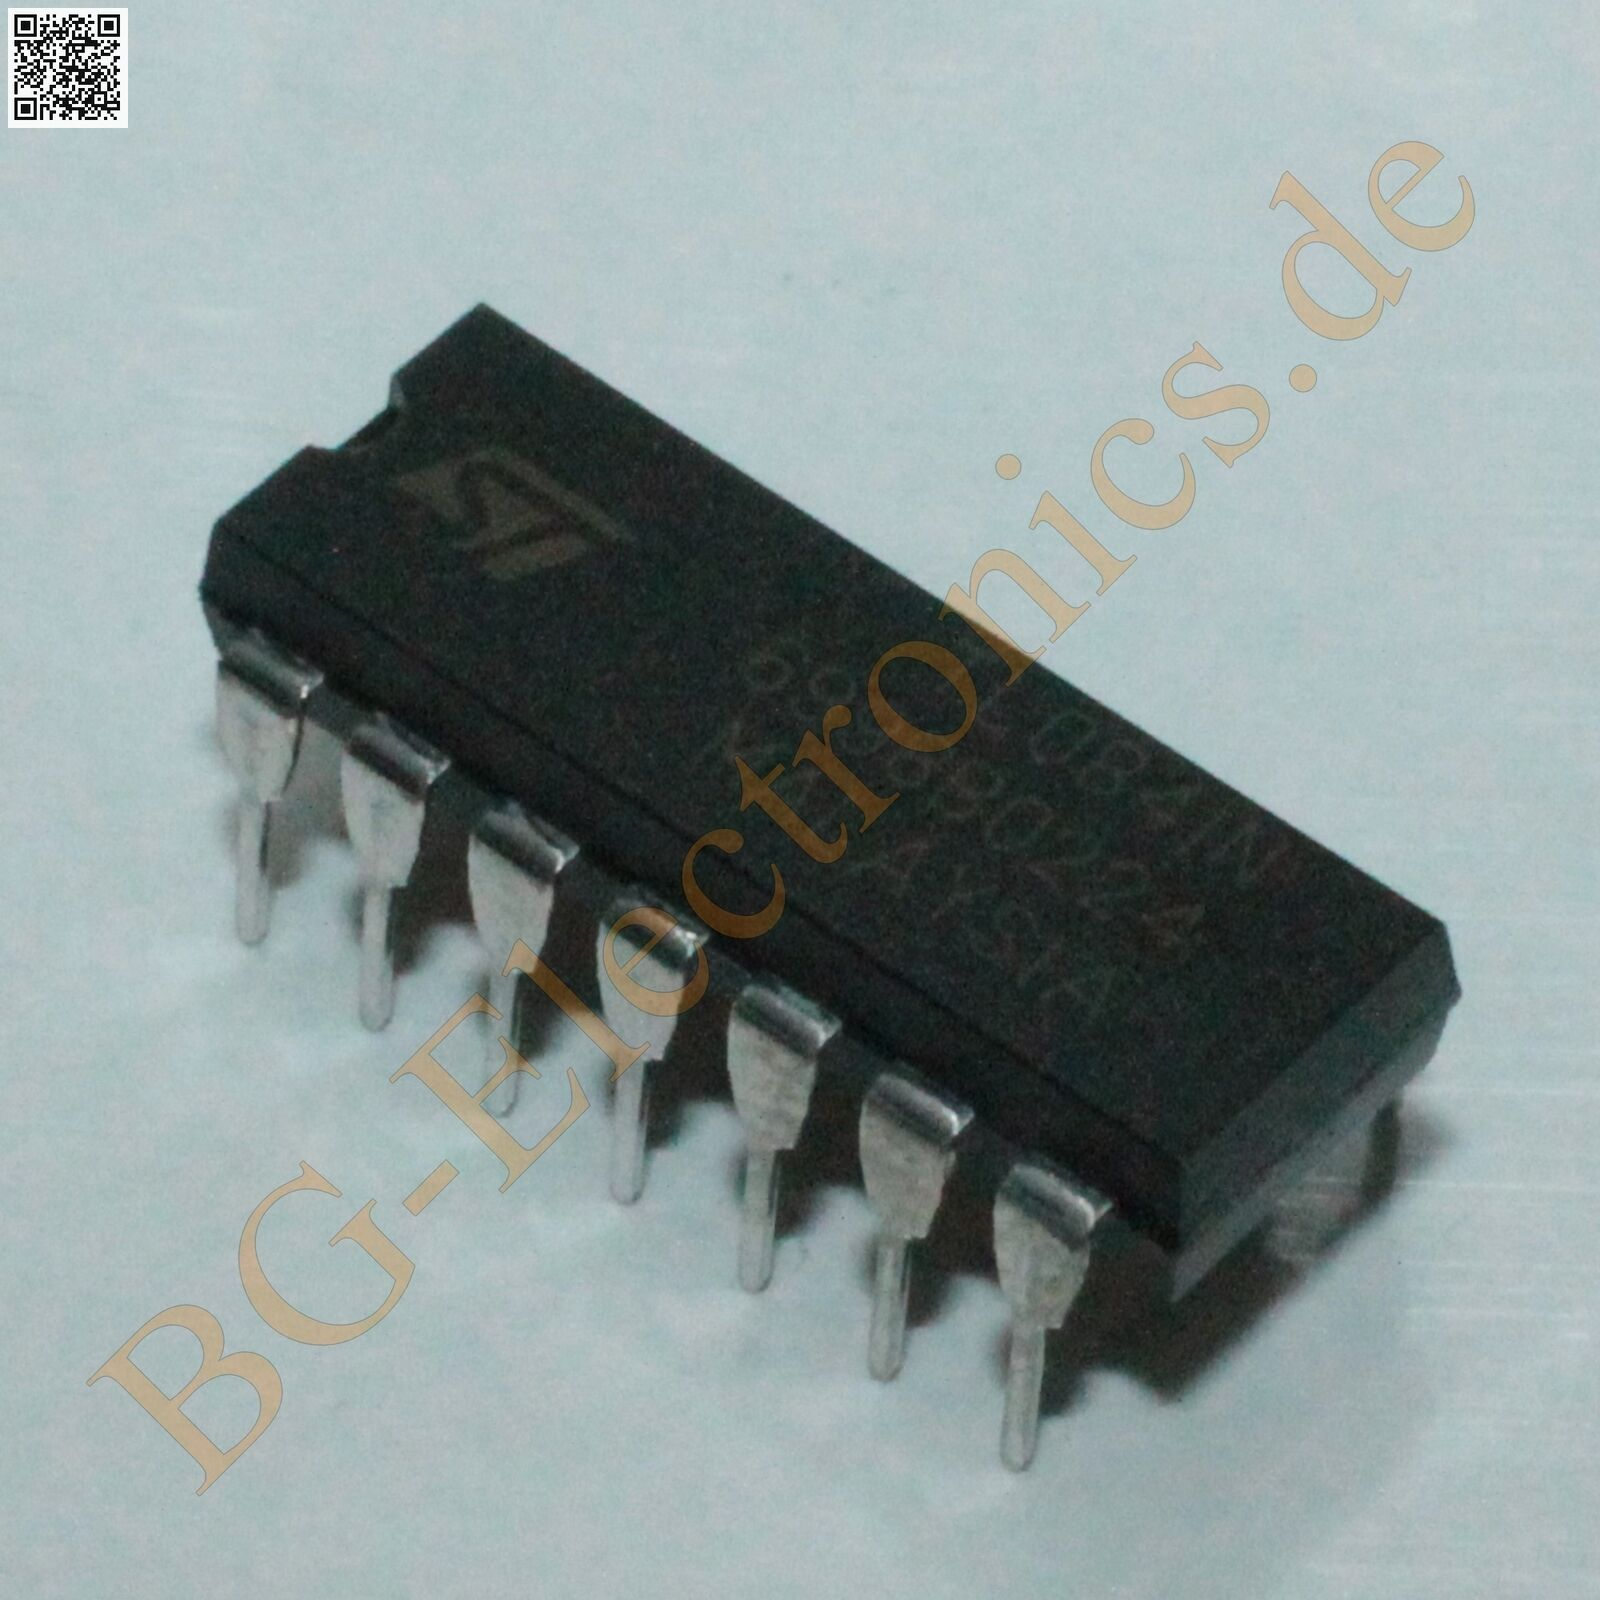 4-fach Operationsverstärker IC SMD TL 084 ST-Mirco SO-14 2St. TL084C